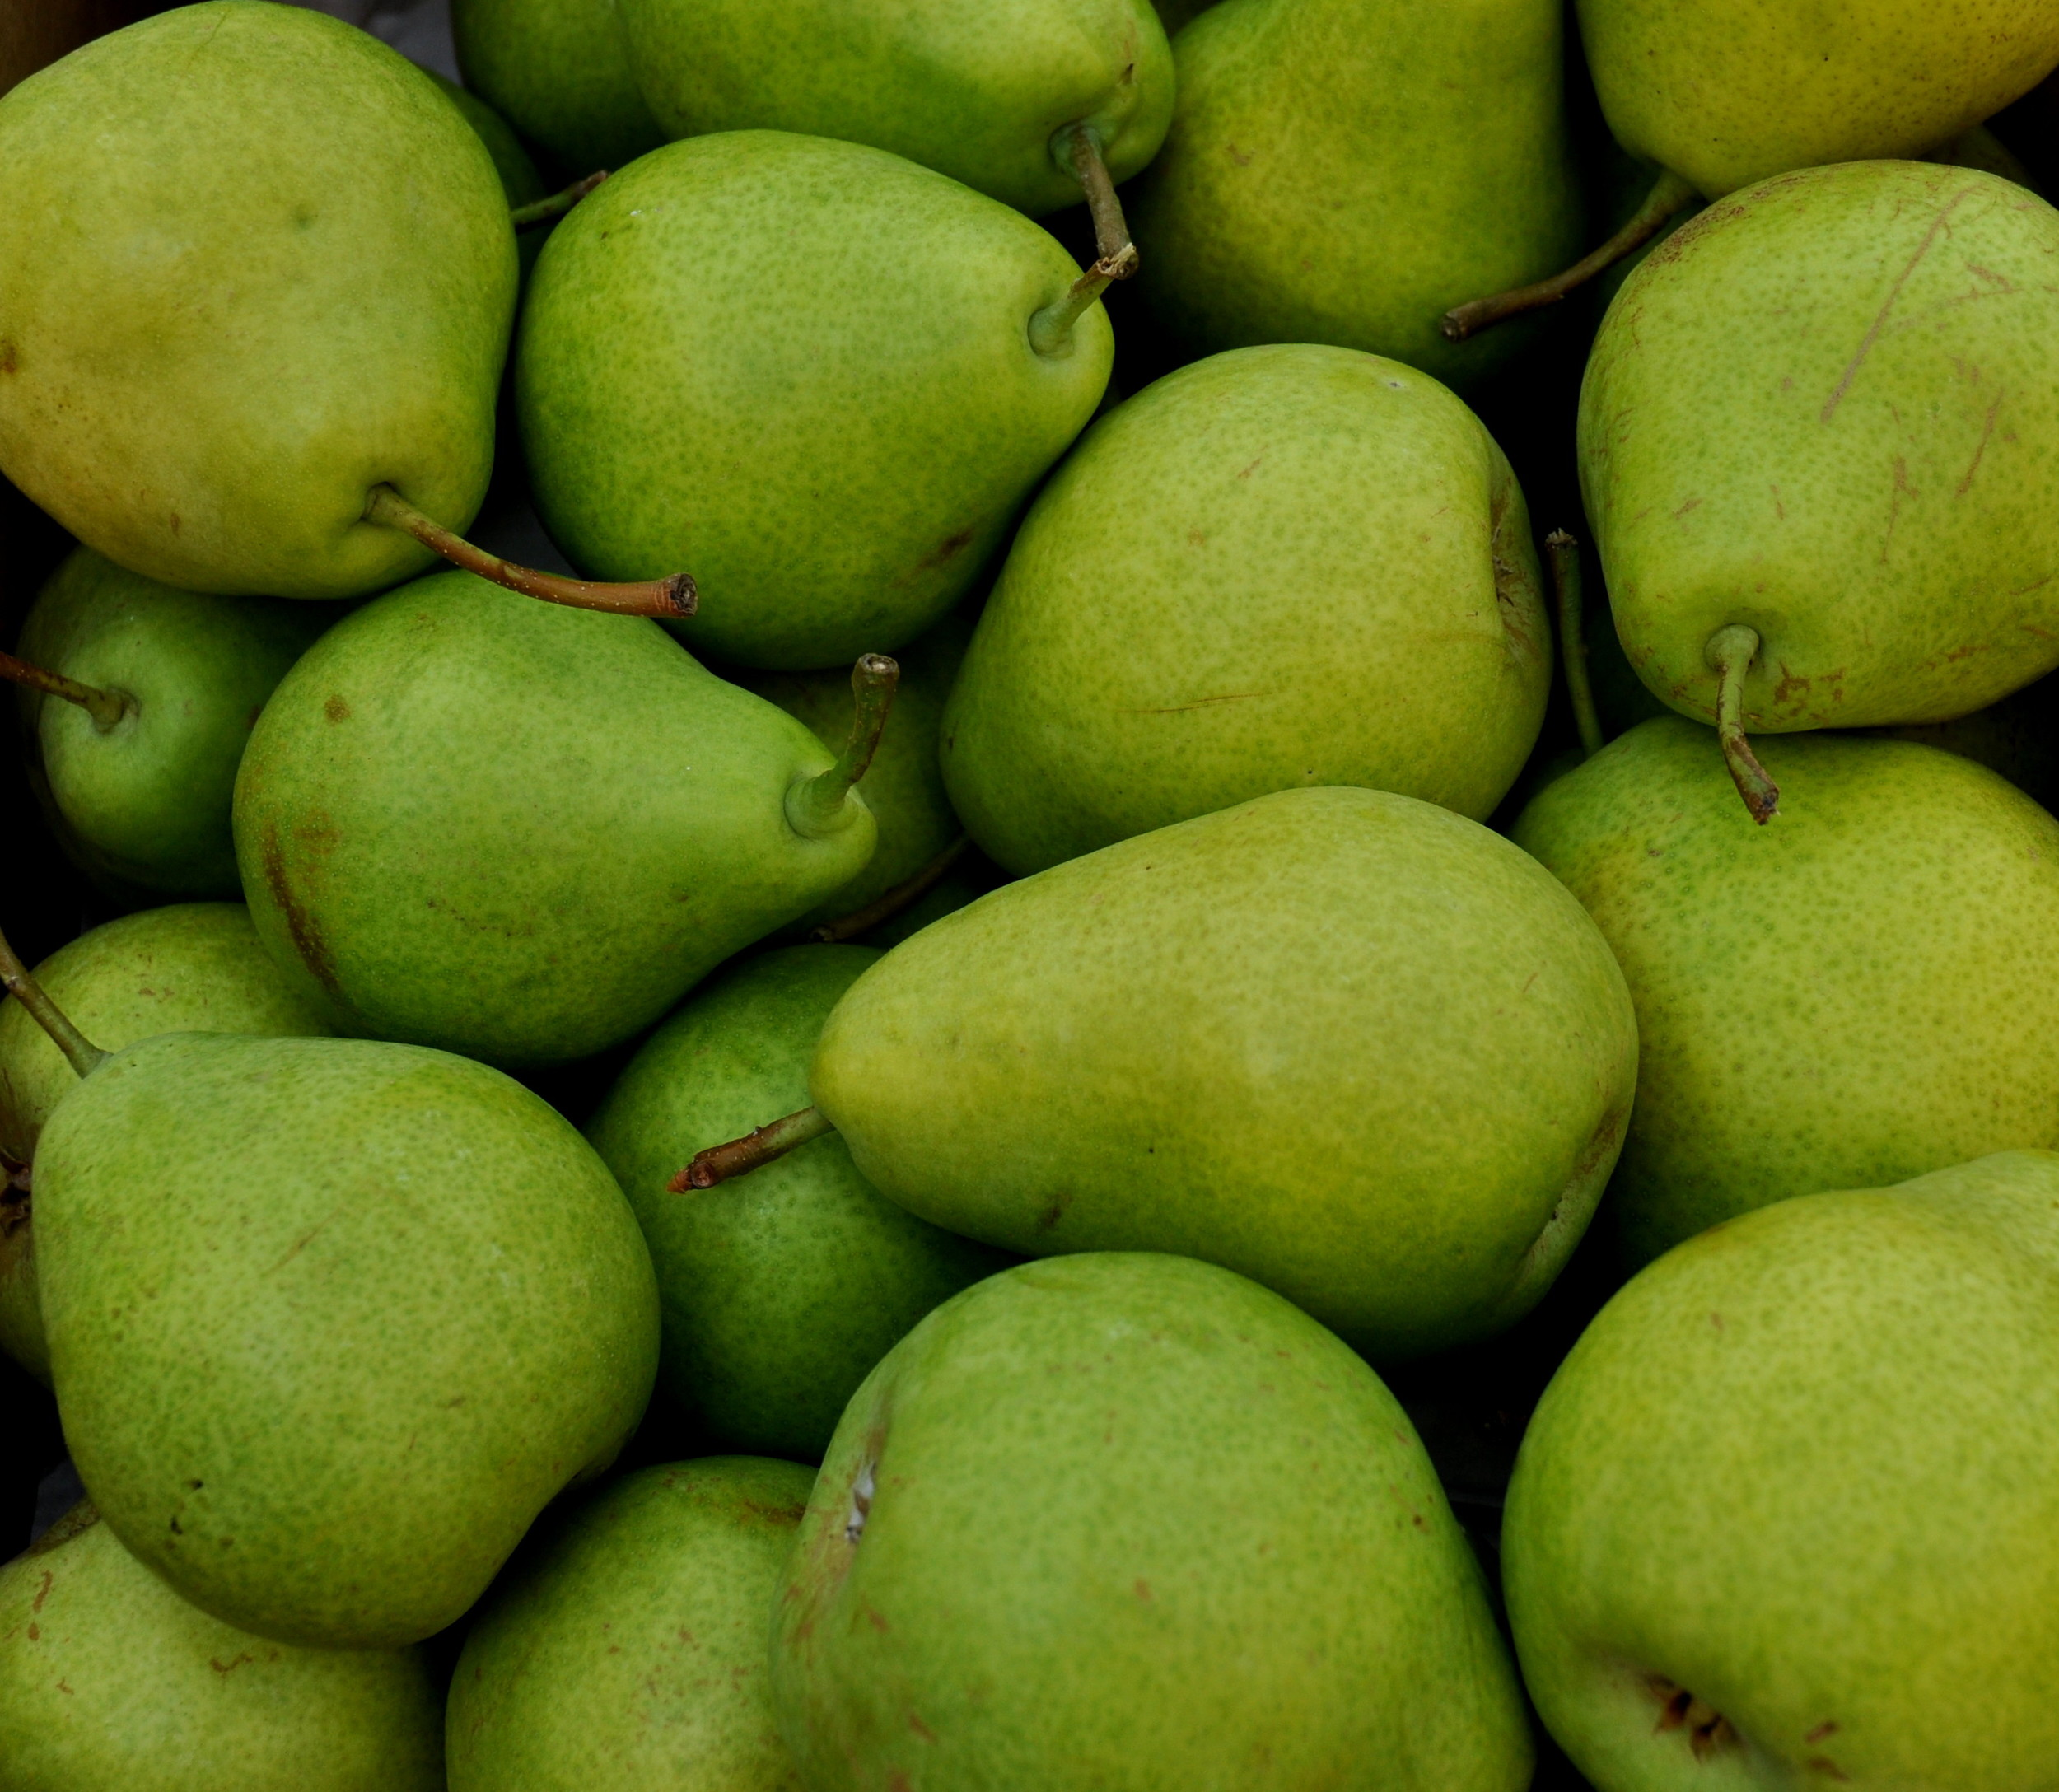 Clara Frijs pears from Booth Canyon Orchard. Photo copyright 2013 by Zachary D. Lyons.